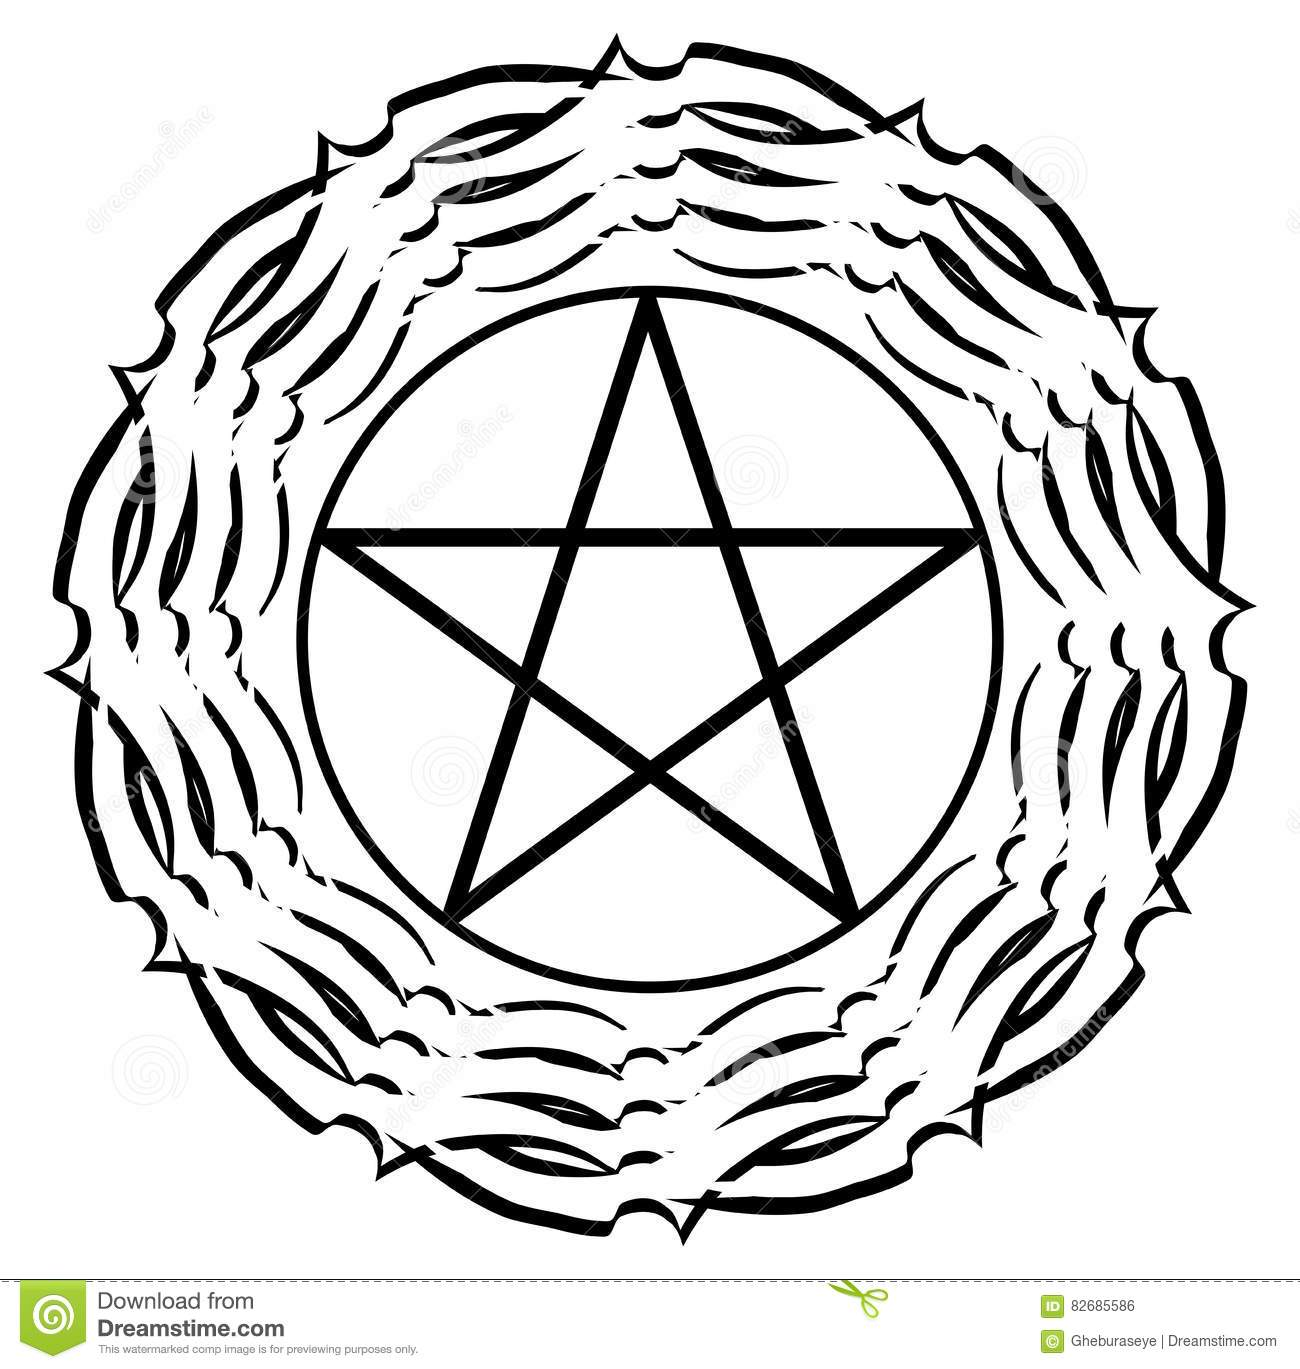 pentacle-black-decoration-isolated-image-repersenting-esoteric-symbol-image-not-representing-satanic-version-82685586[1]